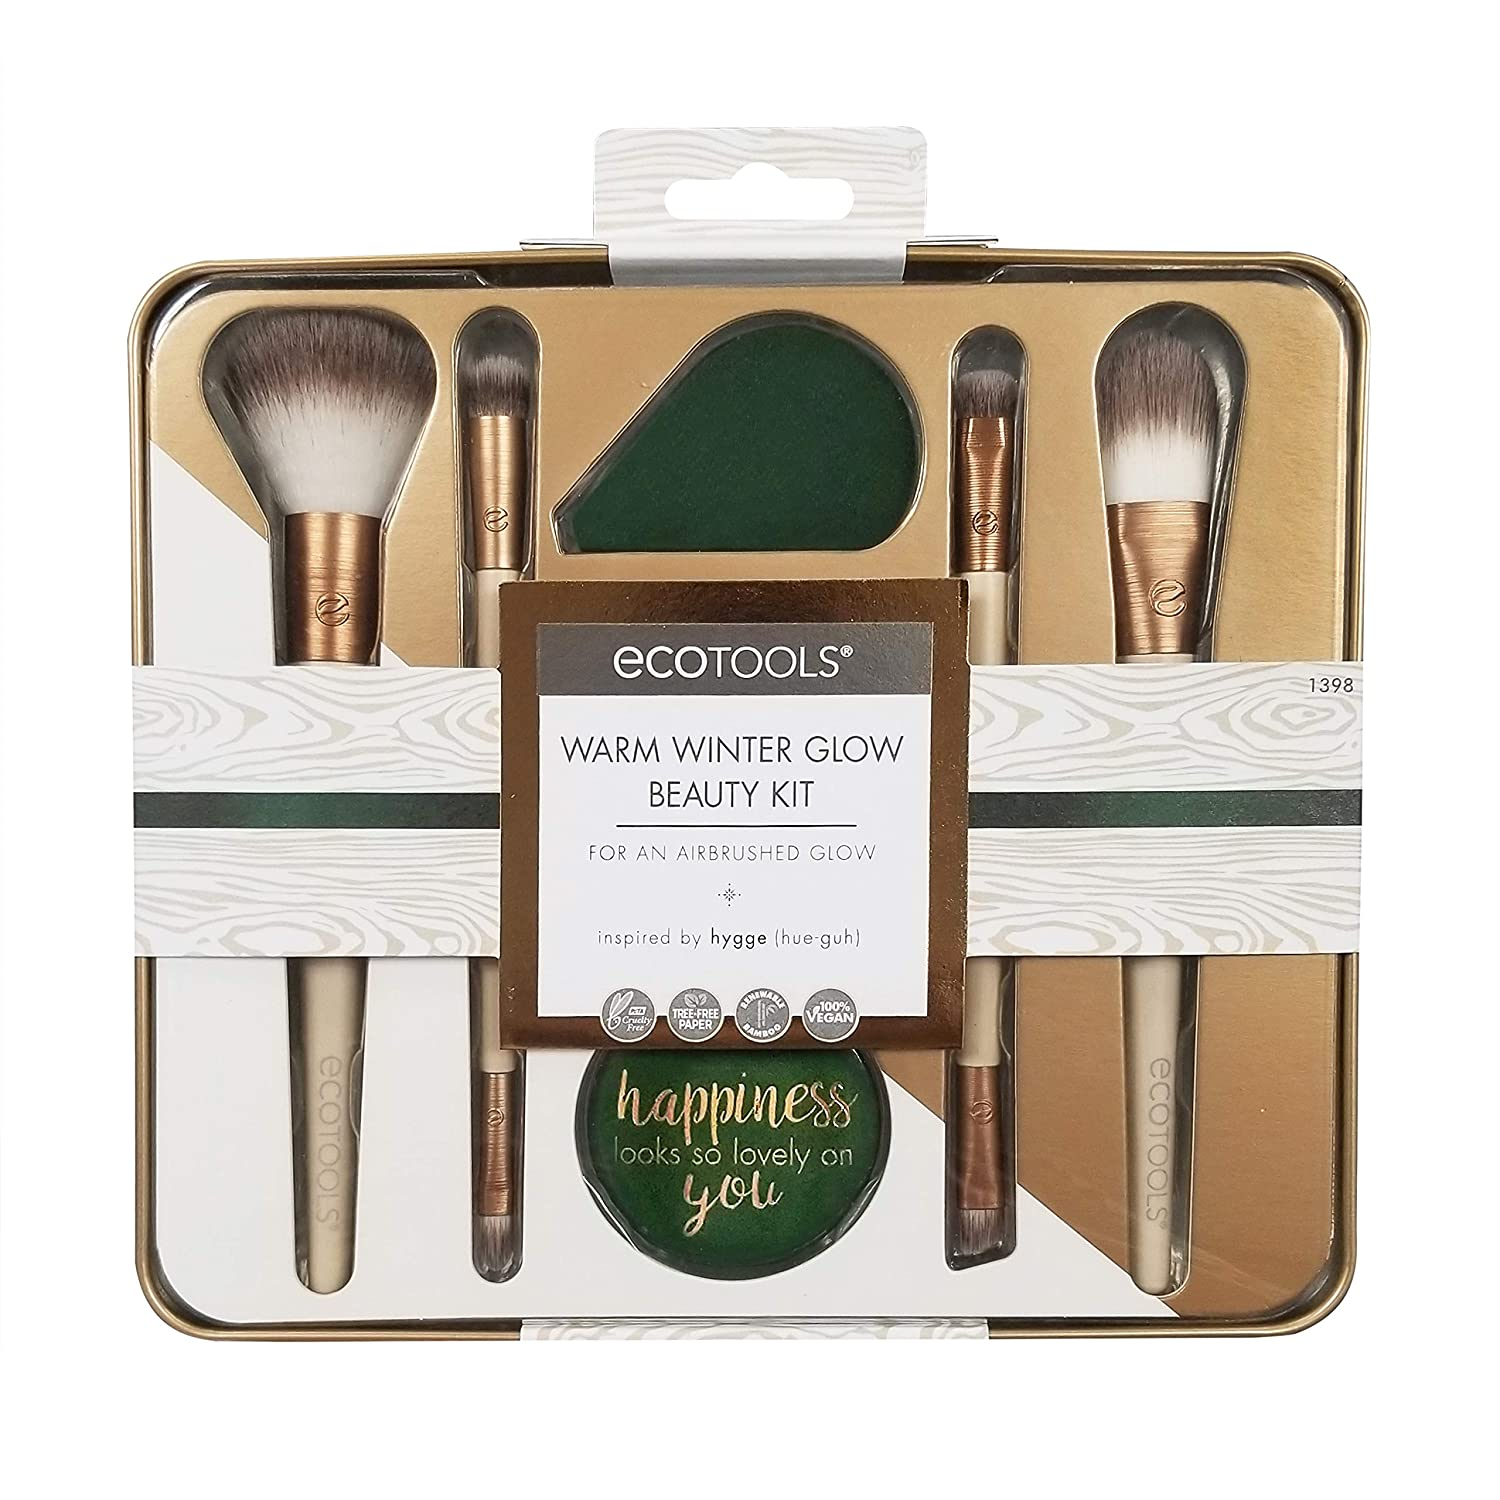 EcoTools Warm Winter Glow Make-up Brush Set with Storage Tin and Mirror Paris Presents Inc 1398